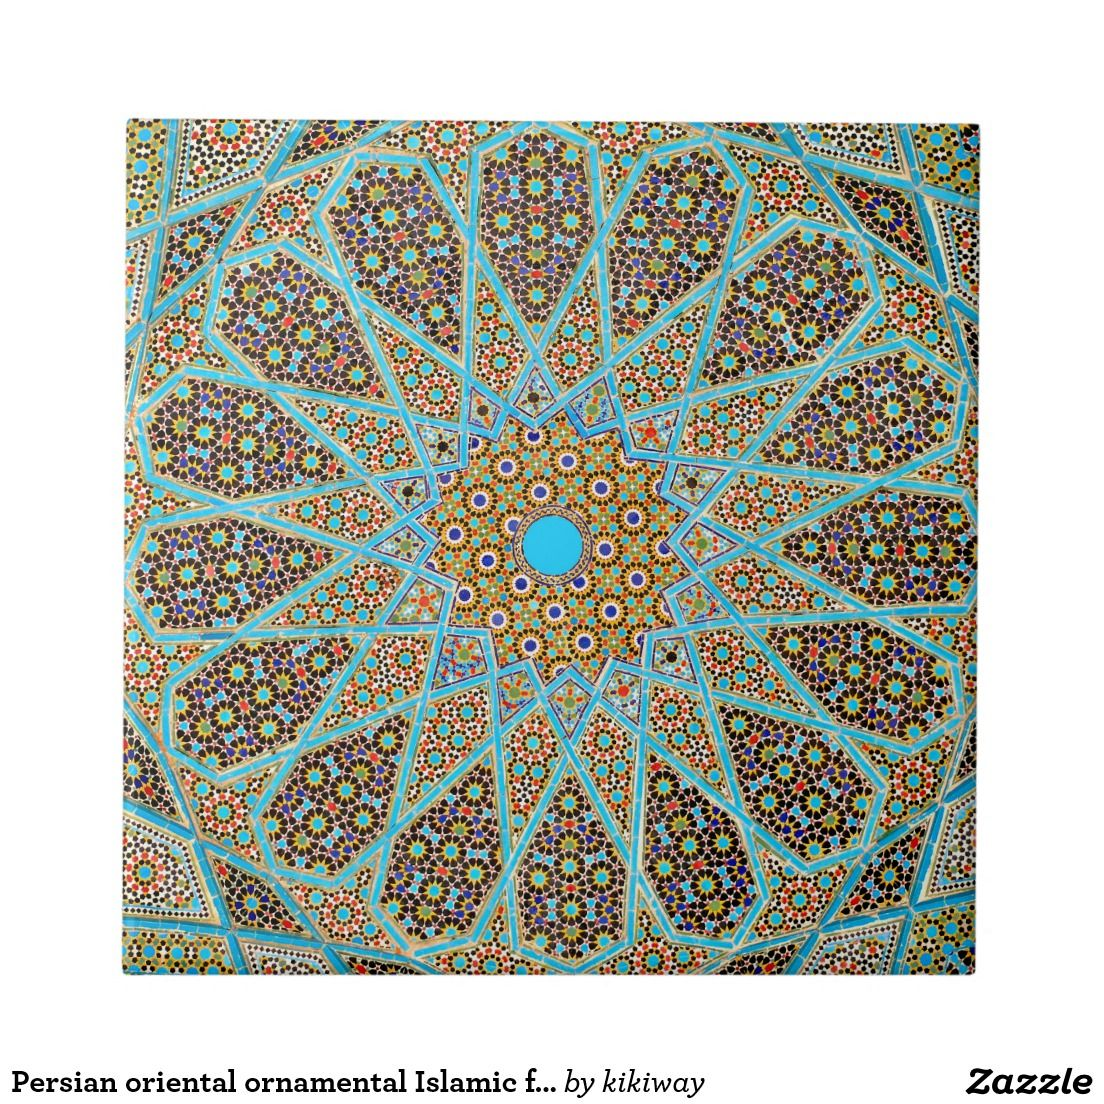 Persian oriental ornamental Islamic floral mosaic Tile